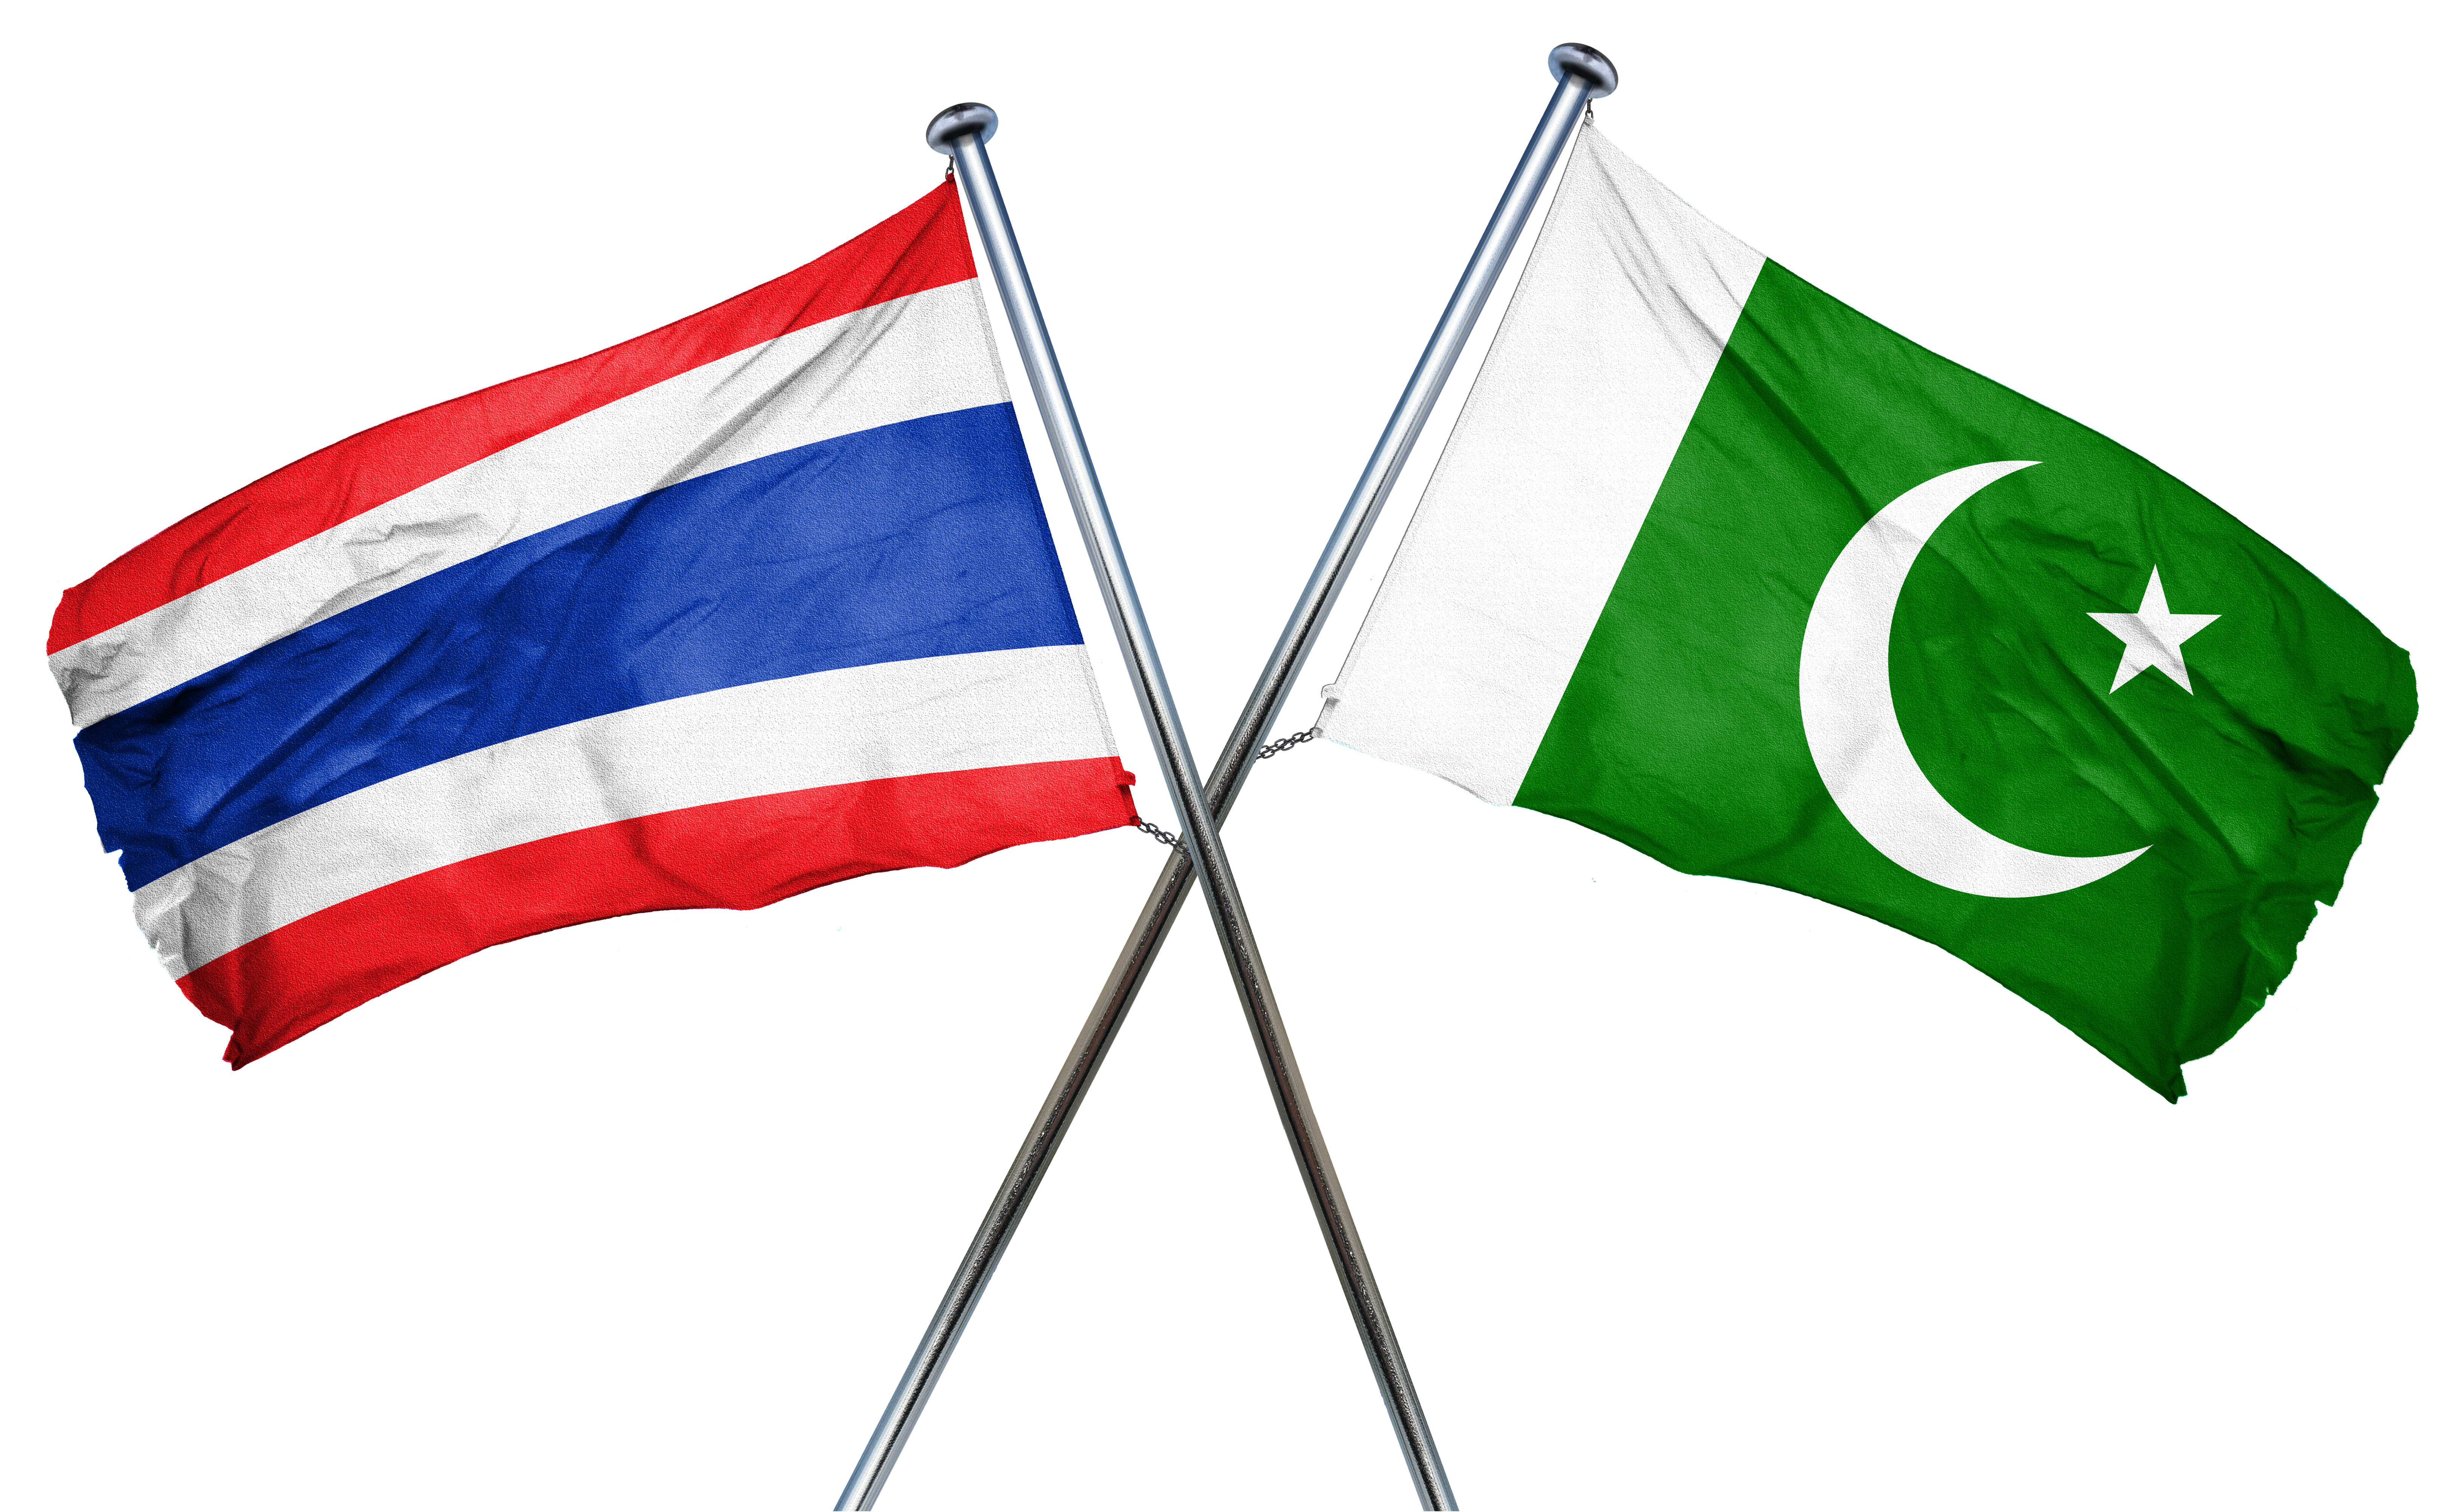 bigstock-Thailand-flag-with-Pakistan-fl